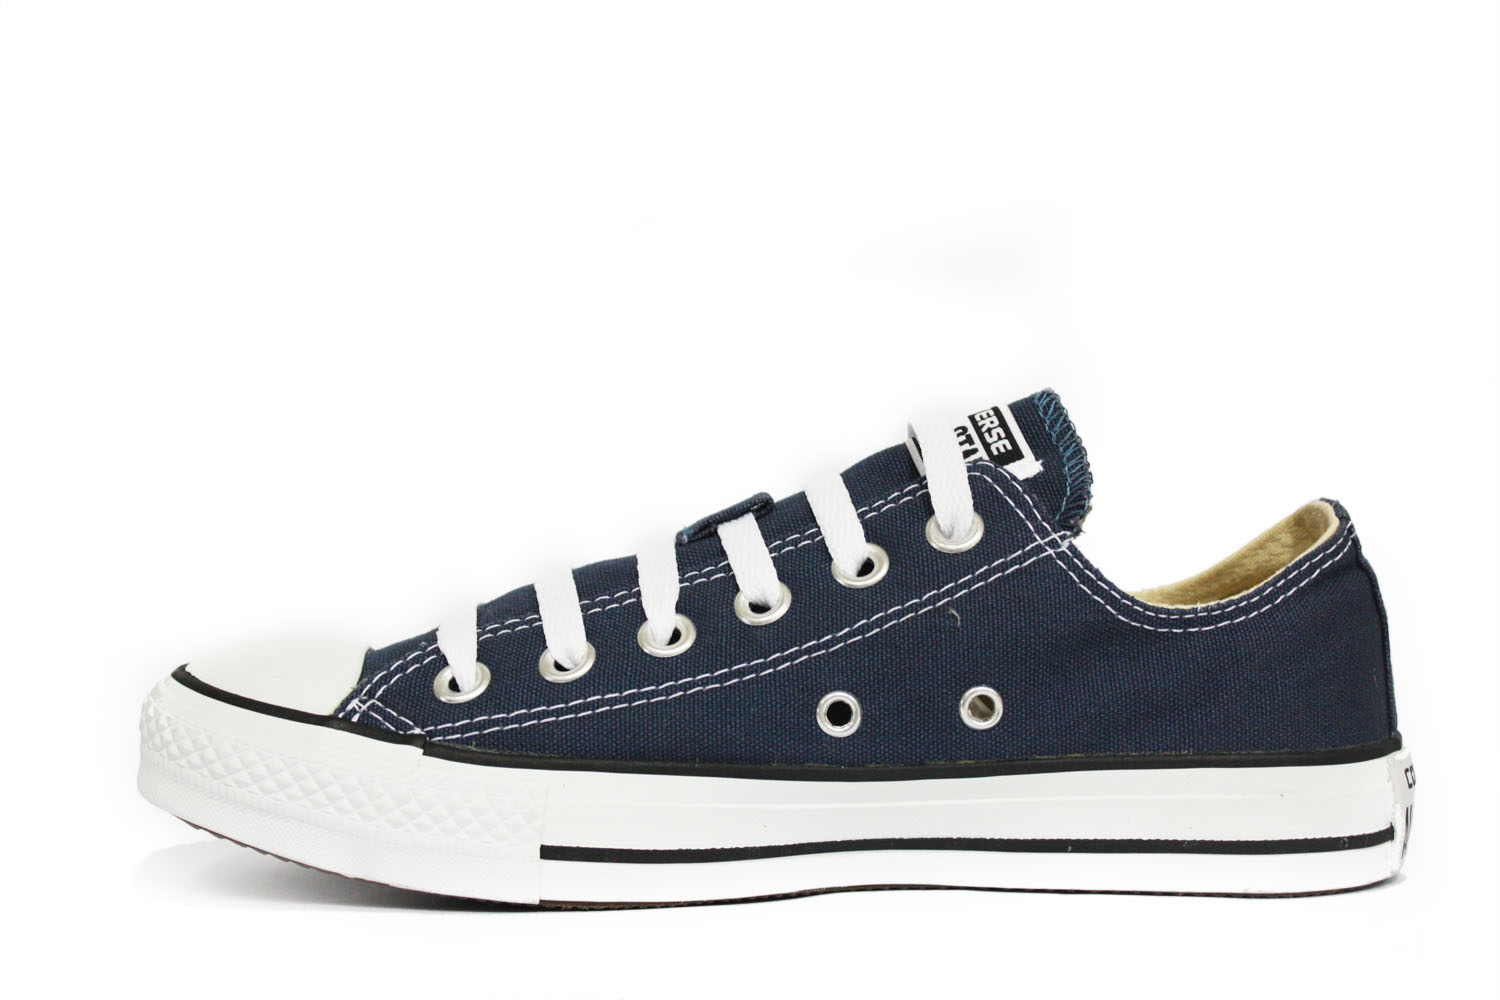 ... promo code for squat deadlift shoes classic converse chuck taylor all  star f253e 05f8d ... 175cbbd58